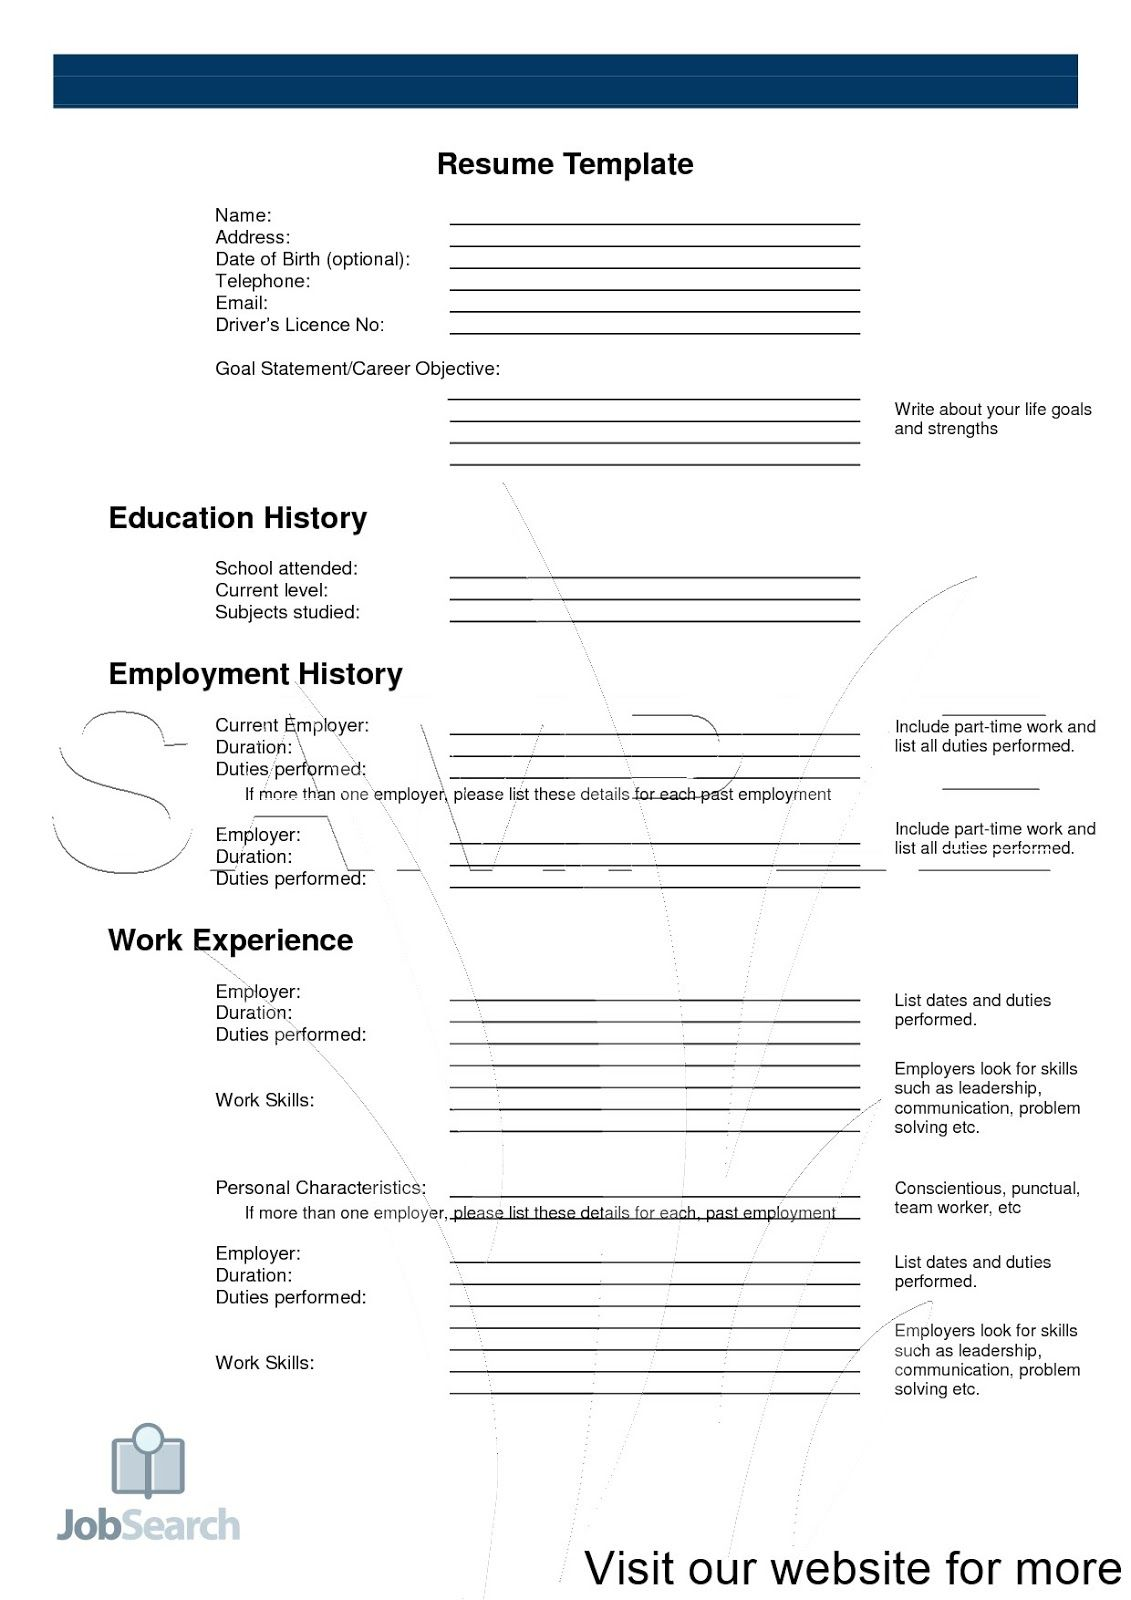 Online Free CV Templates 2020 in 2020 Cv template free